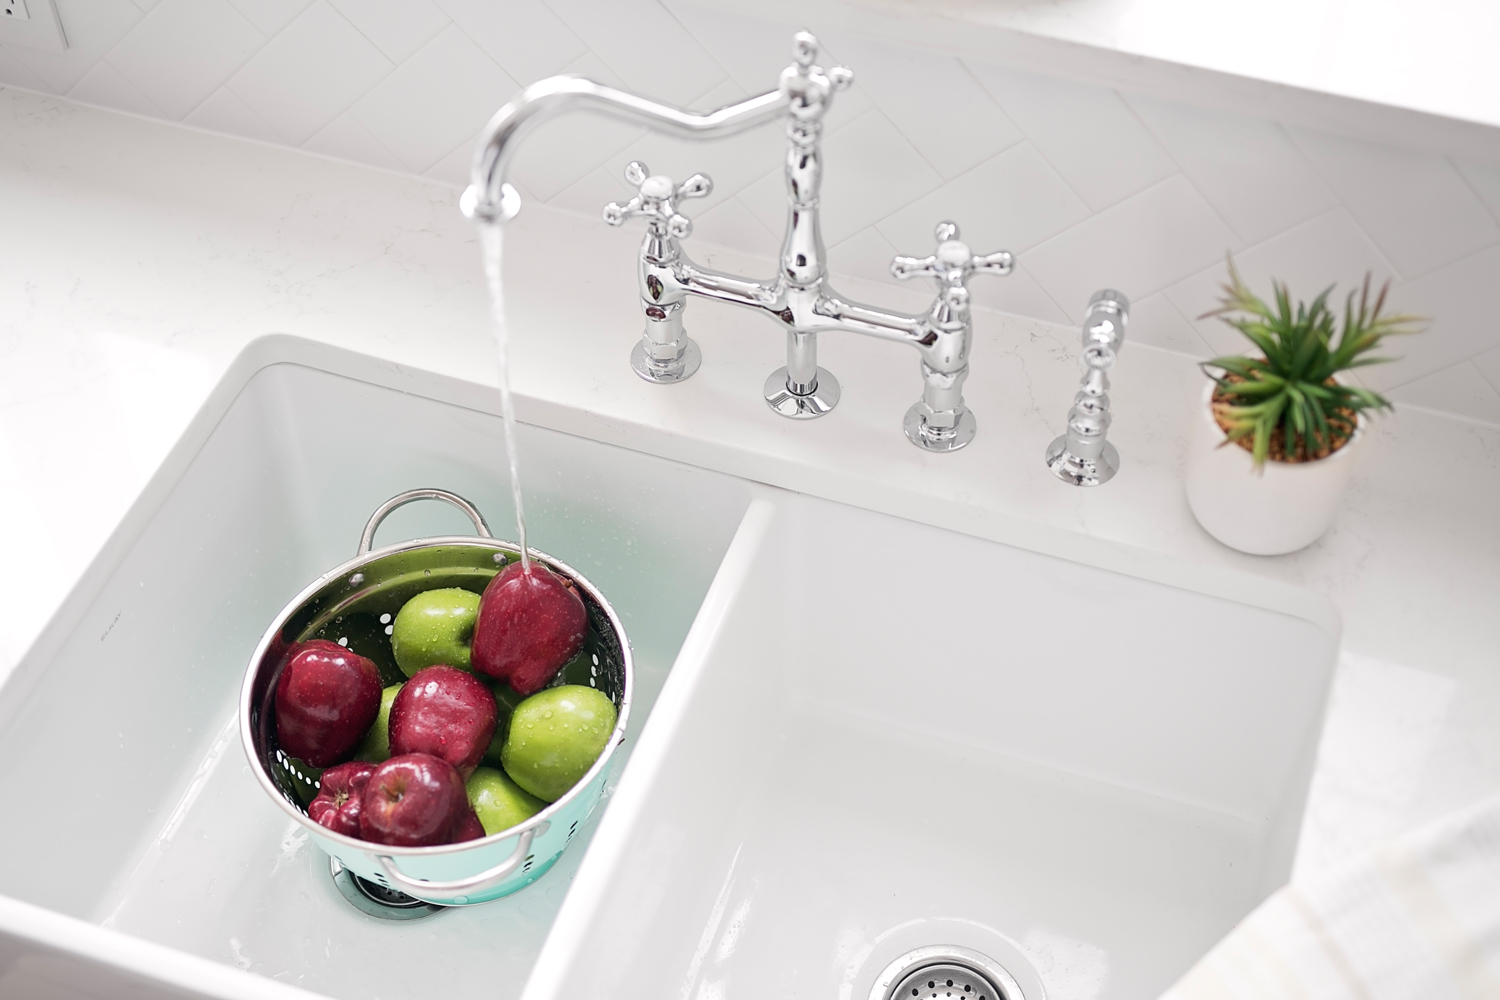 Long beloved for their visual appeal and ergonomic functionality, the farmhouse sink is a go-to choice in contemporary kitchen design. Also known as apron sinks, or apron front sinks, these large kitchen basins were often found in rural homes of decades past.  They were originally designed for comfort; for people who spent long hours at the sink, ergonomics were important – the apron front's forward orientation eliminated the countertop that caused them to lean forward and strain more than necessary.